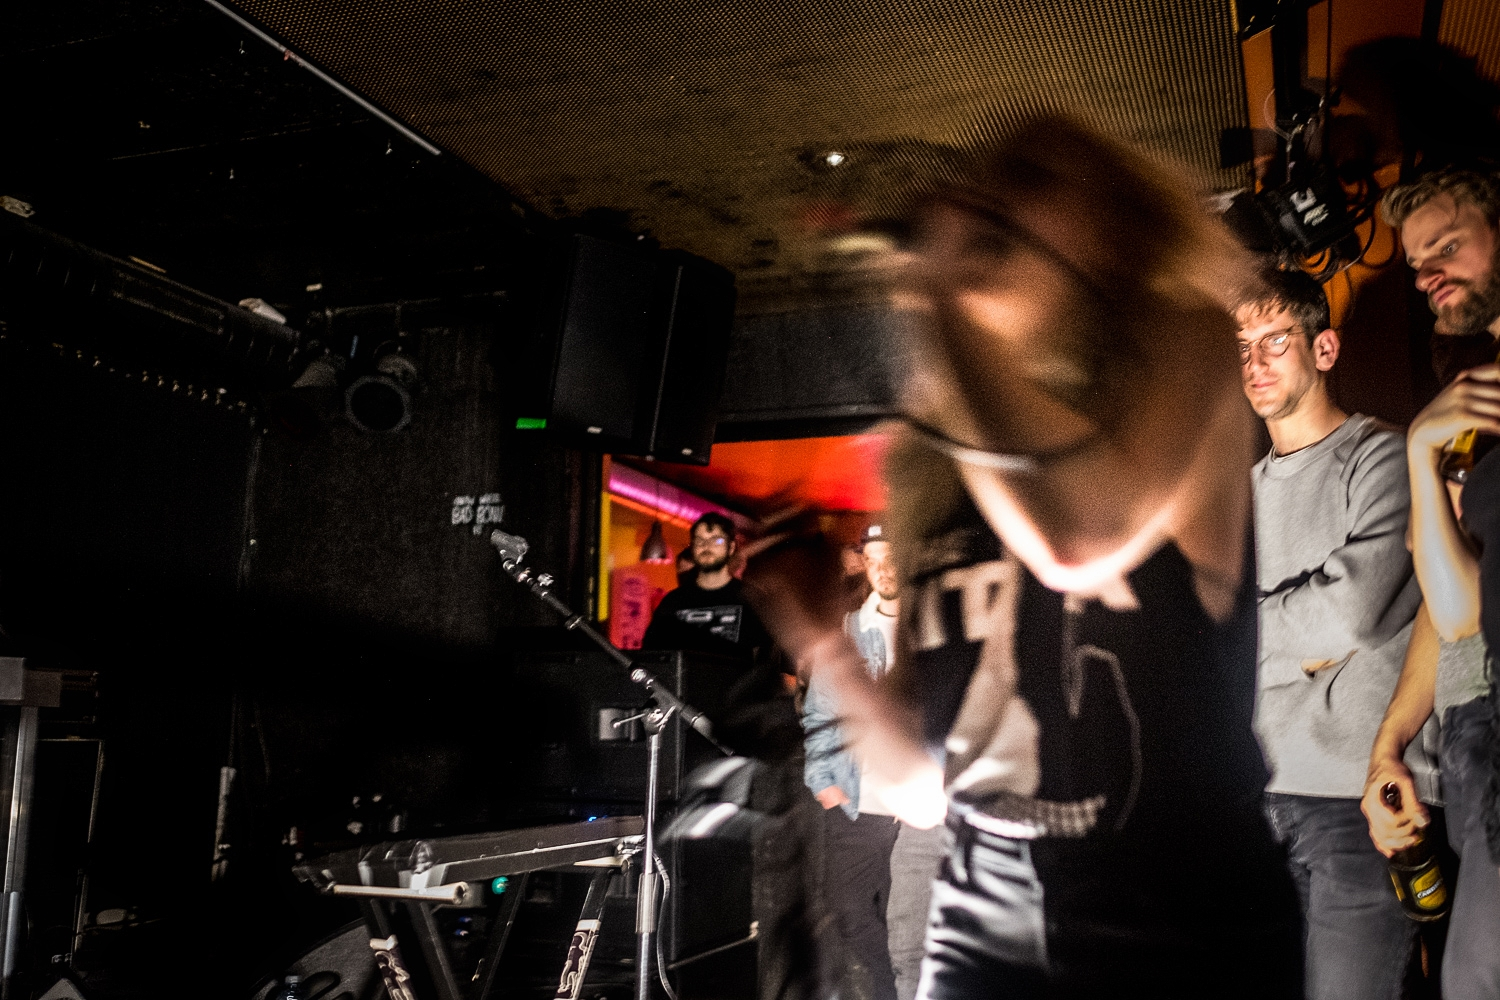 20190418-Lingua-Ignota-@-Bad-Bonn-028-col-Cred_Michael_Lamertz_@indie.and_.more_.jpg